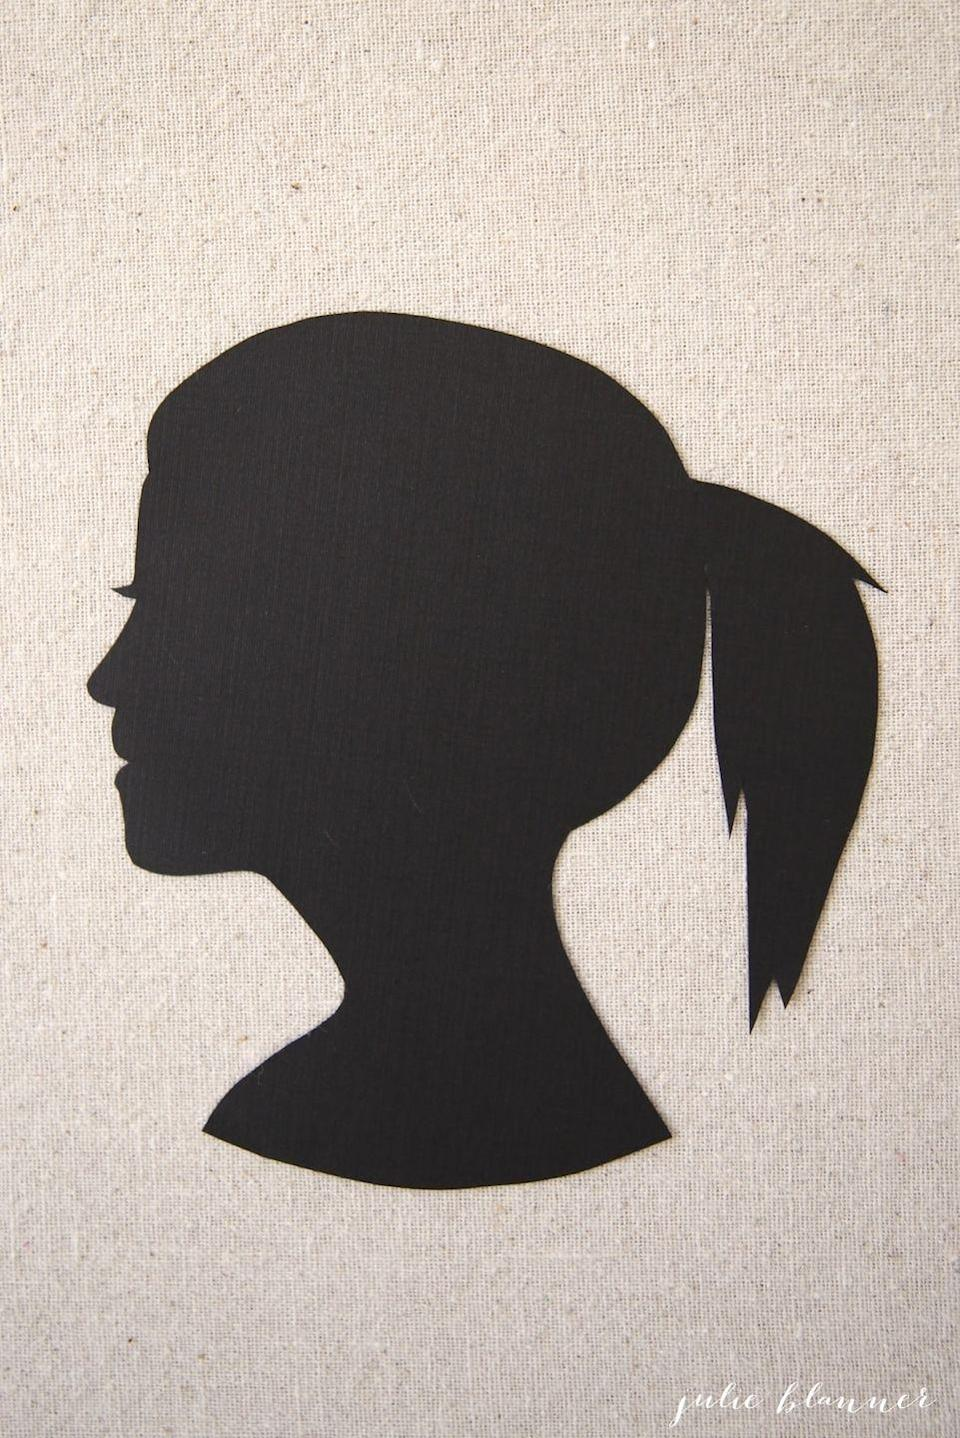 """<p>Need to fill up a blank wall? Create this inexpensive and darling silhouette portrait of any member of the family (even Fluffy!). It makes a perfect gift for grandparents, too!</p><p><strong>Get the tutorial at <a href=""""https://julieblanner.com/silhouette-portrait/"""" rel=""""nofollow noopener"""" target=""""_blank"""" data-ylk=""""slk:Julie Blanner"""" class=""""link rapid-noclick-resp"""">Julie Blanner</a>. </strong></p><p><a class=""""link rapid-noclick-resp"""" href=""""https://www.amazon.com/Darice-Coredinations-Cardstock-12-Inch-20-Pack/dp/B0086XIB68/ref=sr_1_5?dchild=1&keywords=black+cardstock&qid=1600884080&s=home-garden&sr=1-5&tag=syn-yahoo-20&ascsubtag=%5Bartid%7C10050.g.23489557%5Bsrc%7Cyahoo-us"""" rel=""""nofollow noopener"""" target=""""_blank"""" data-ylk=""""slk:SHOP BLACK CARDSTOCK"""">SHOP BLACK CARDSTOCK</a></p>"""